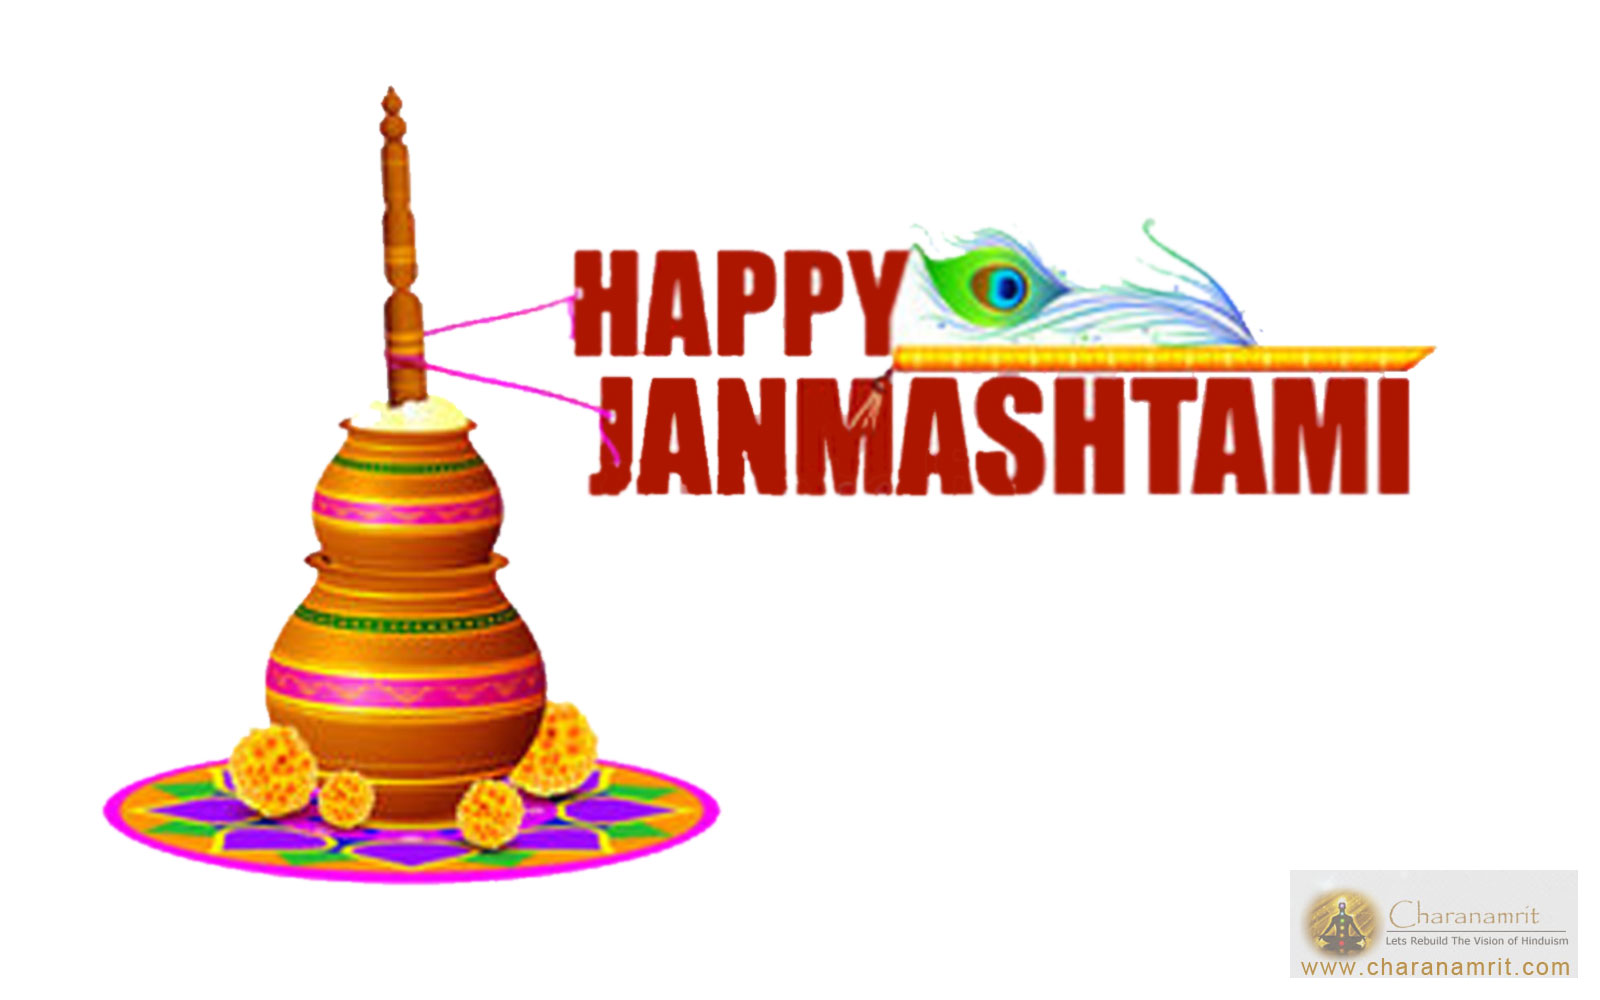 Happy Krishna Janmashtami 2016 WhatsApp & Facebook Status in Marathi